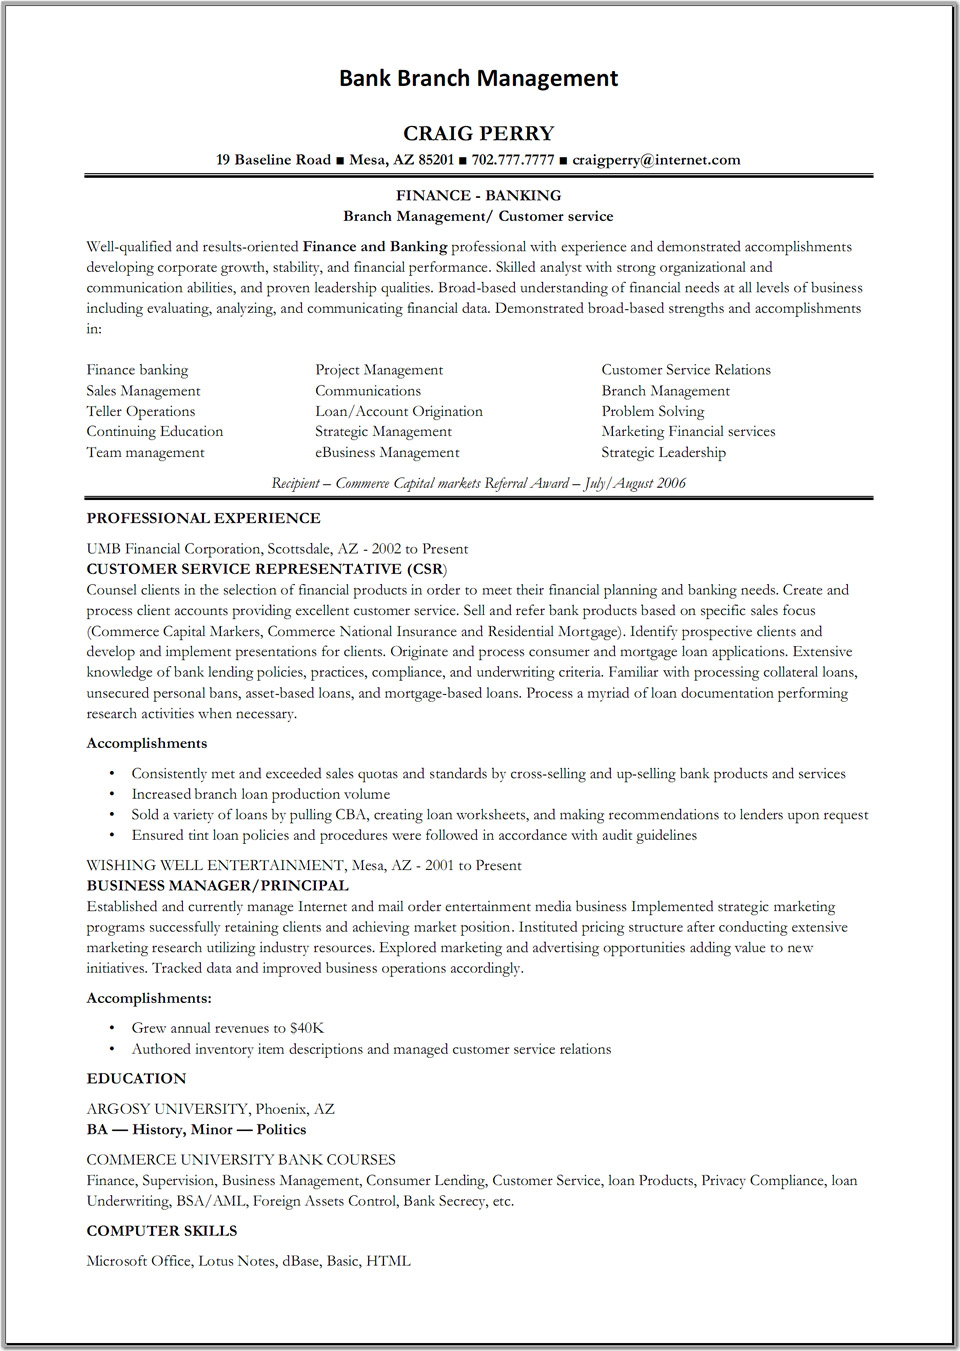 Attractive Professional Summary For Bank Teller Resume Bank Branch Managemennt  Professional Summary For Bank Teller Resume Skills Inside Bank Teller Skills